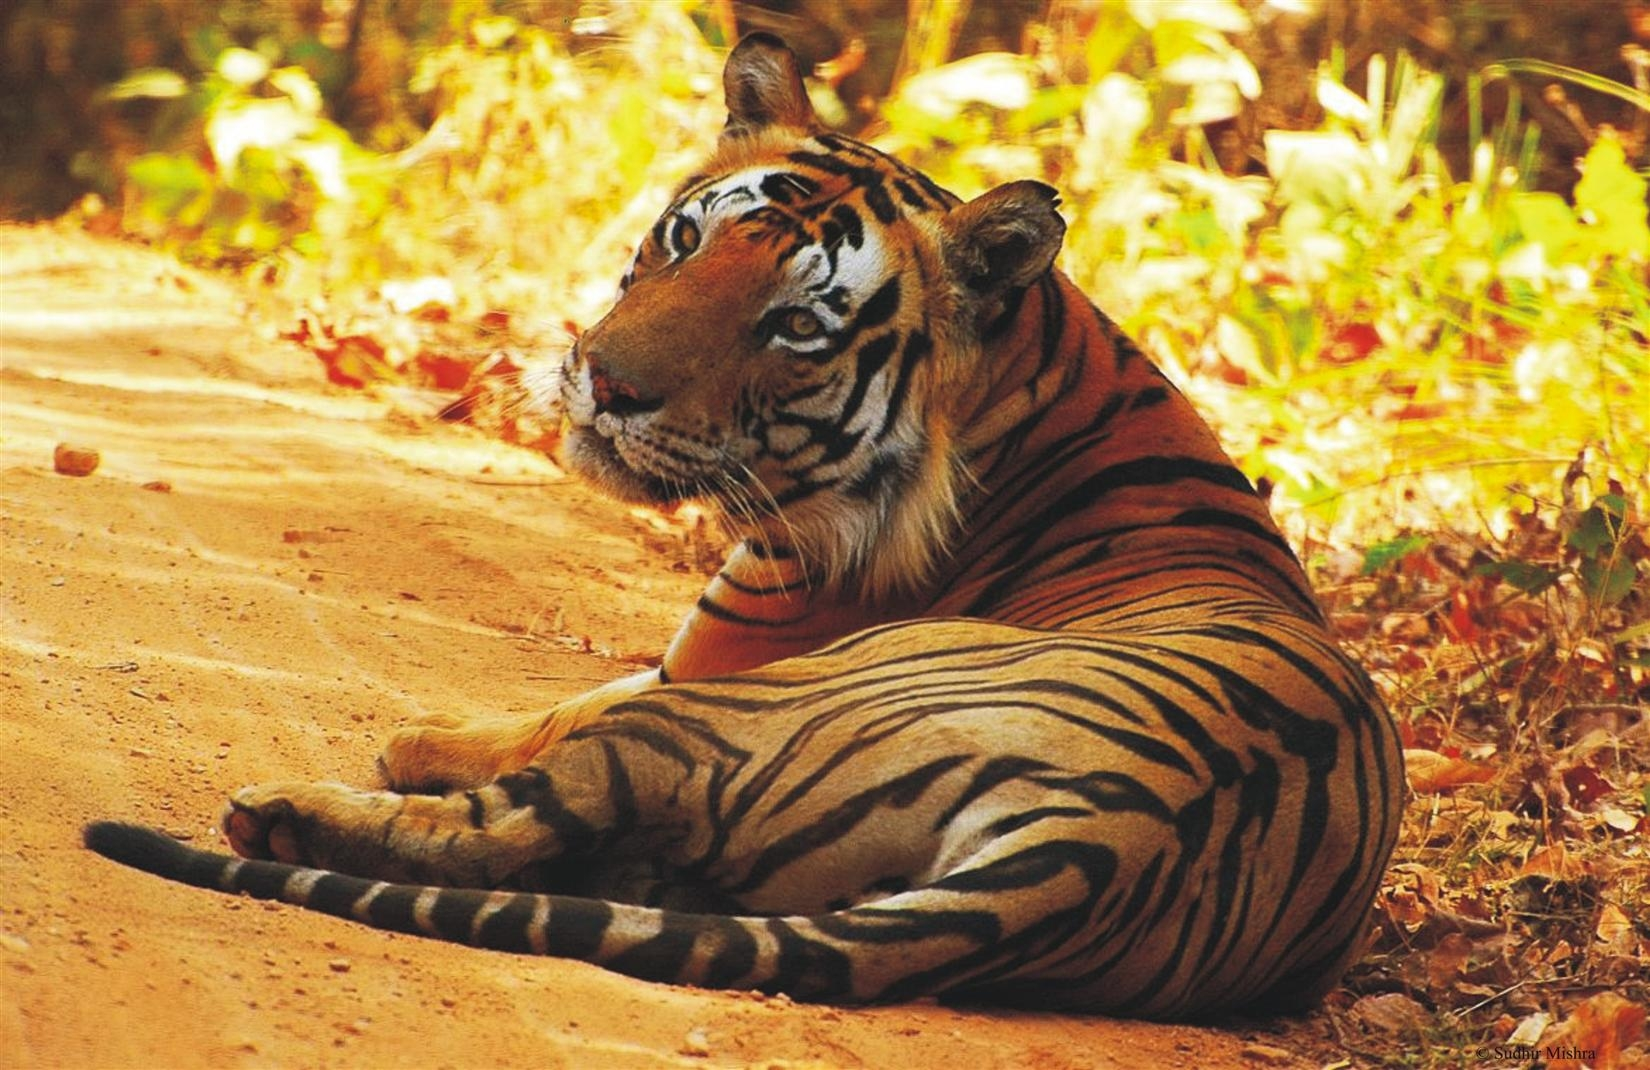 India has a long standing and successful track record of protecting its tigers says Modi at Tiger conservation meet